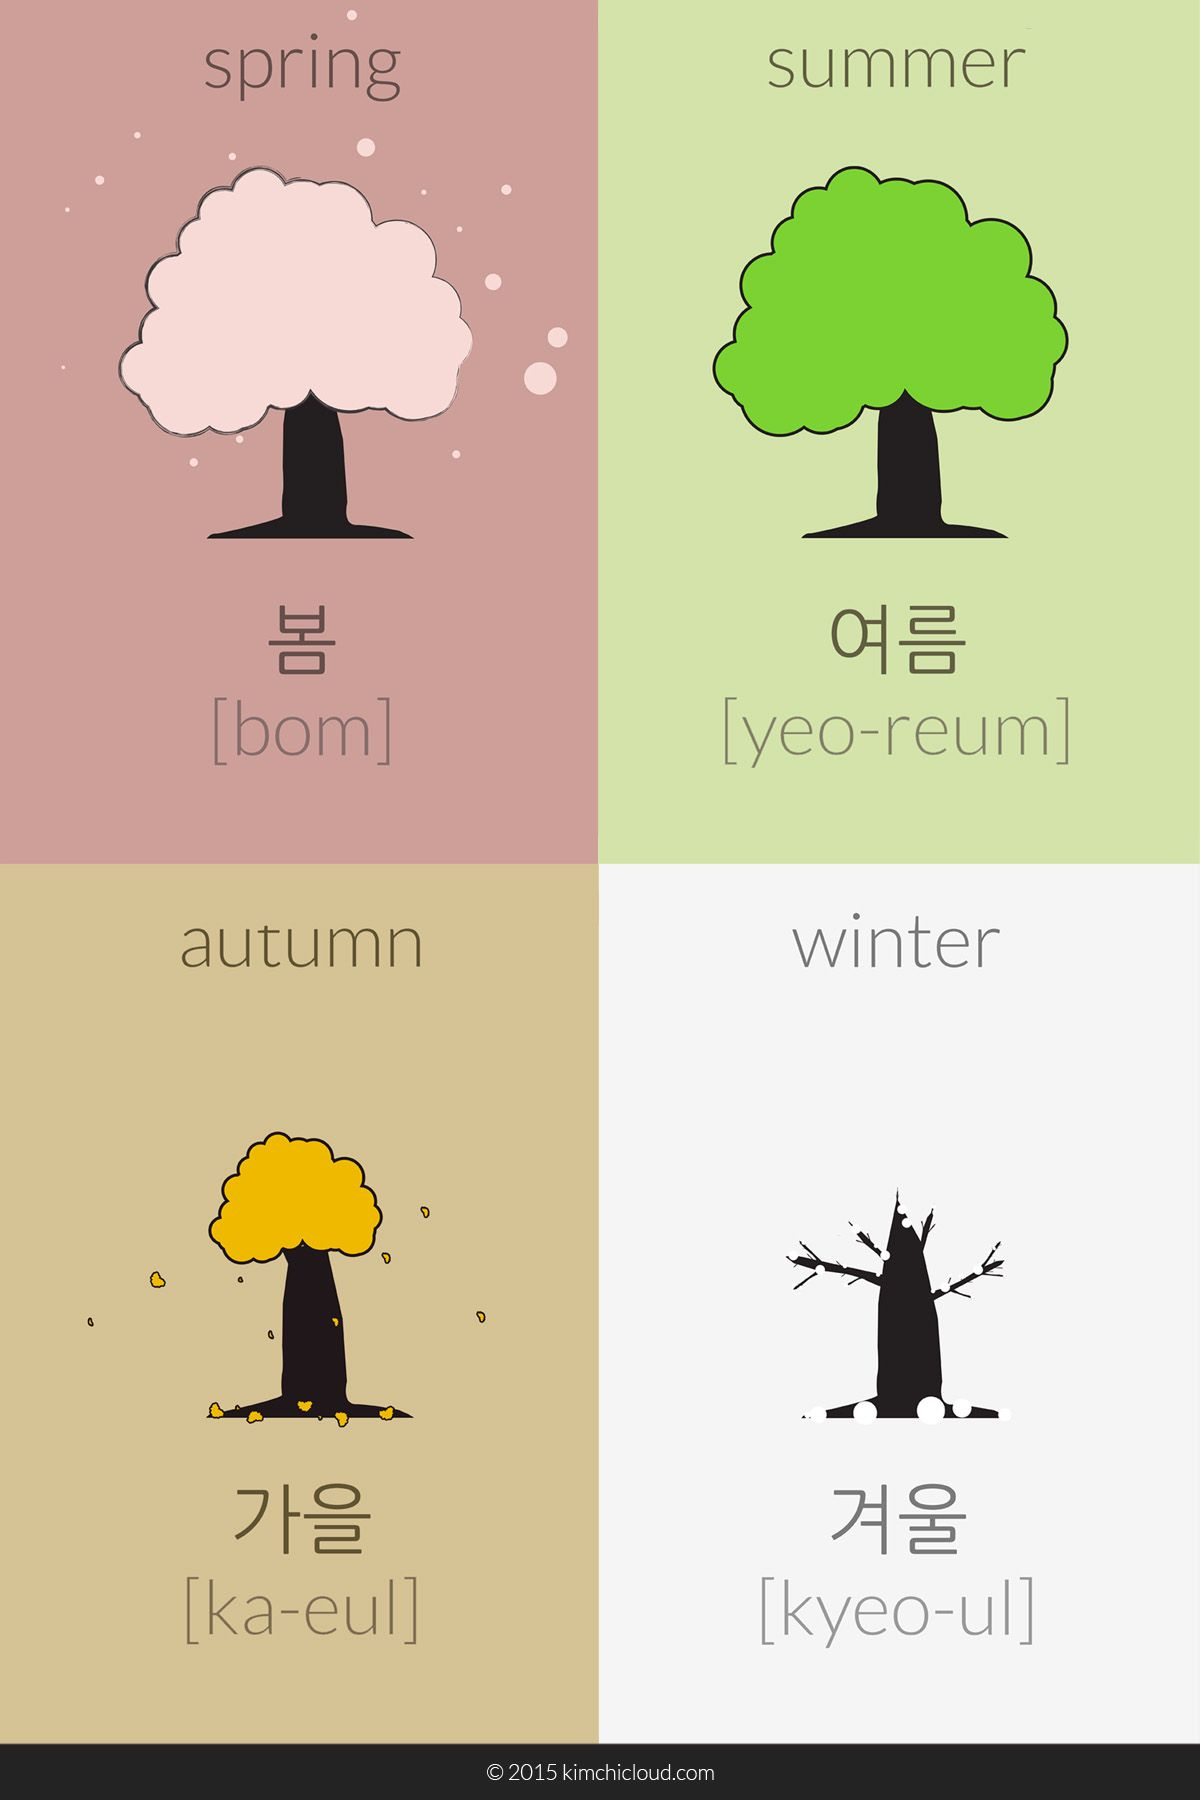 the words for the four seasons in korean are summer spring 봄